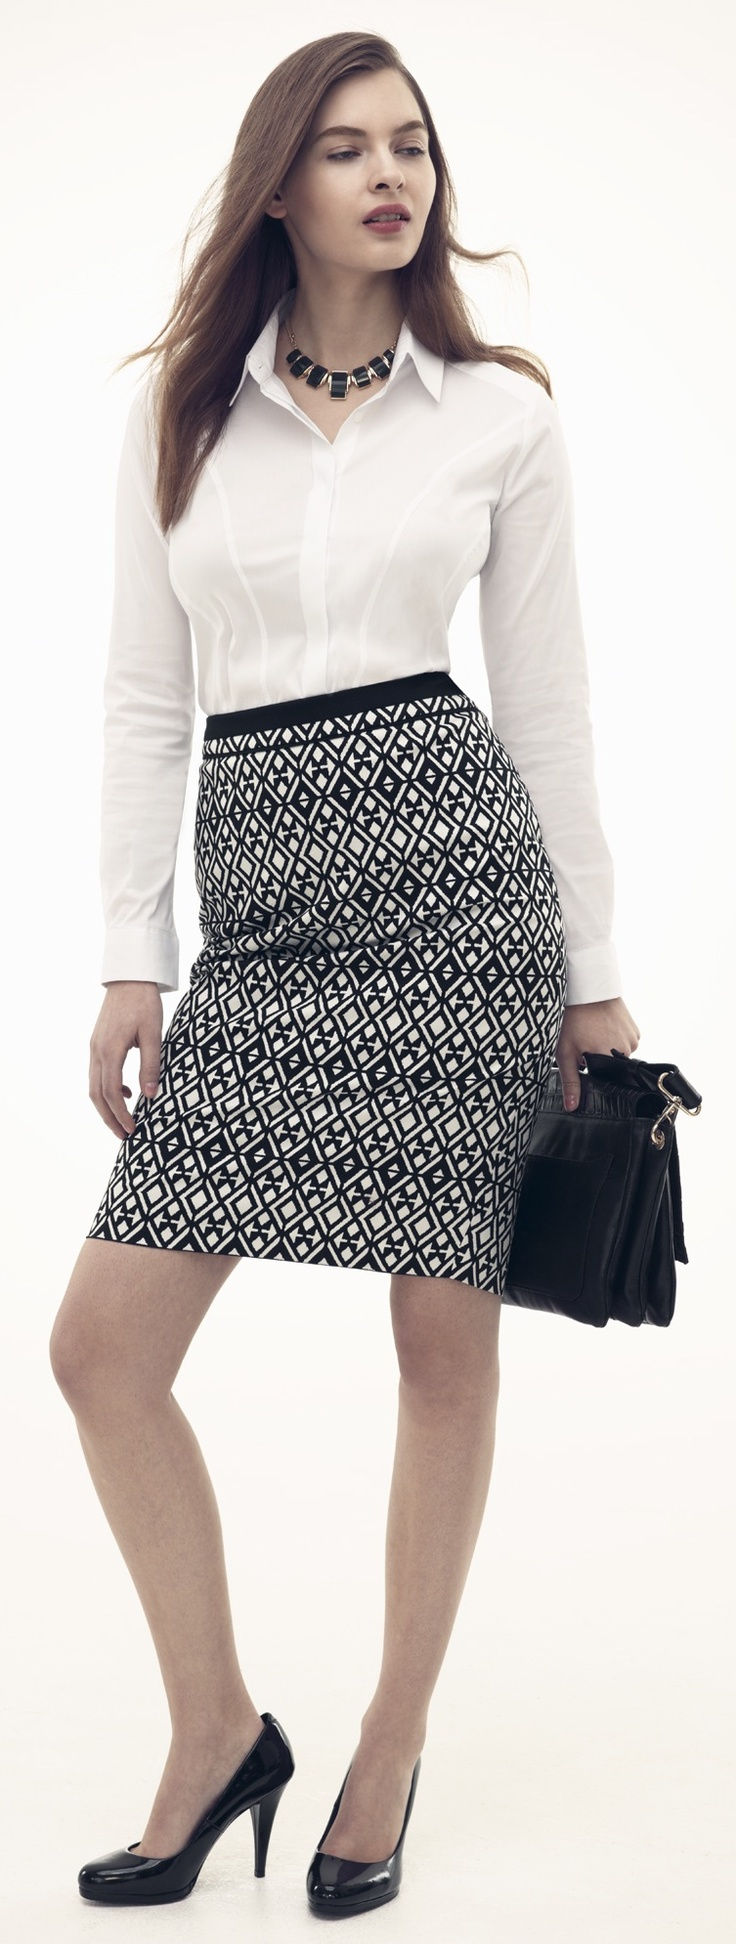 Try Something A Little Different Next Time You Go Into Work With White Blouse And Tribal Print Skirt